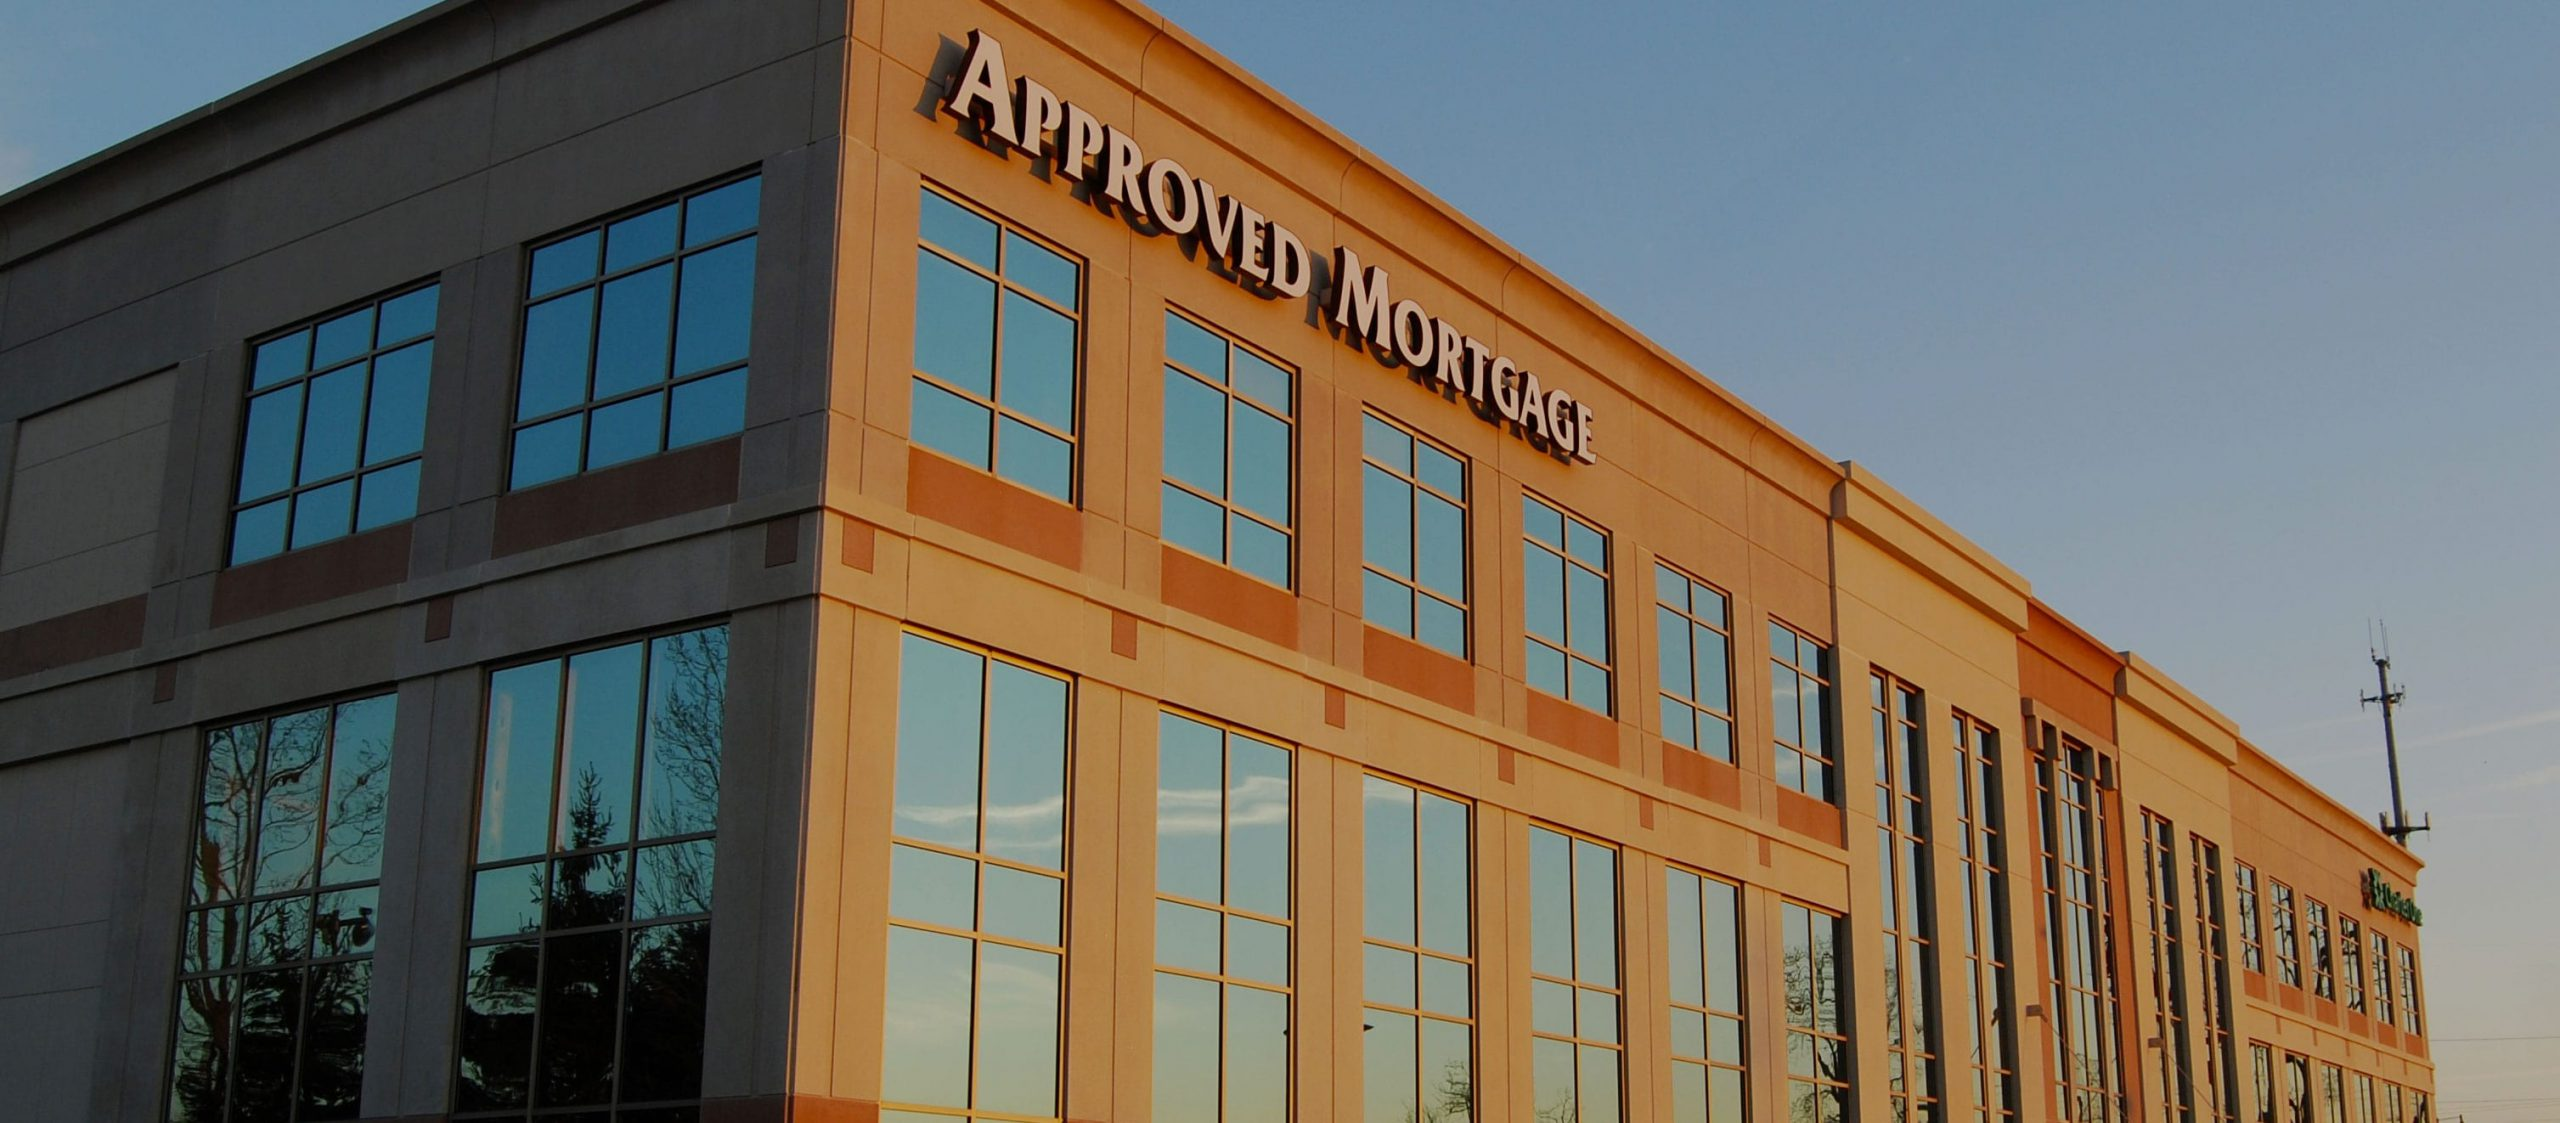 Approved Mortgage office building - Greenwood, IN